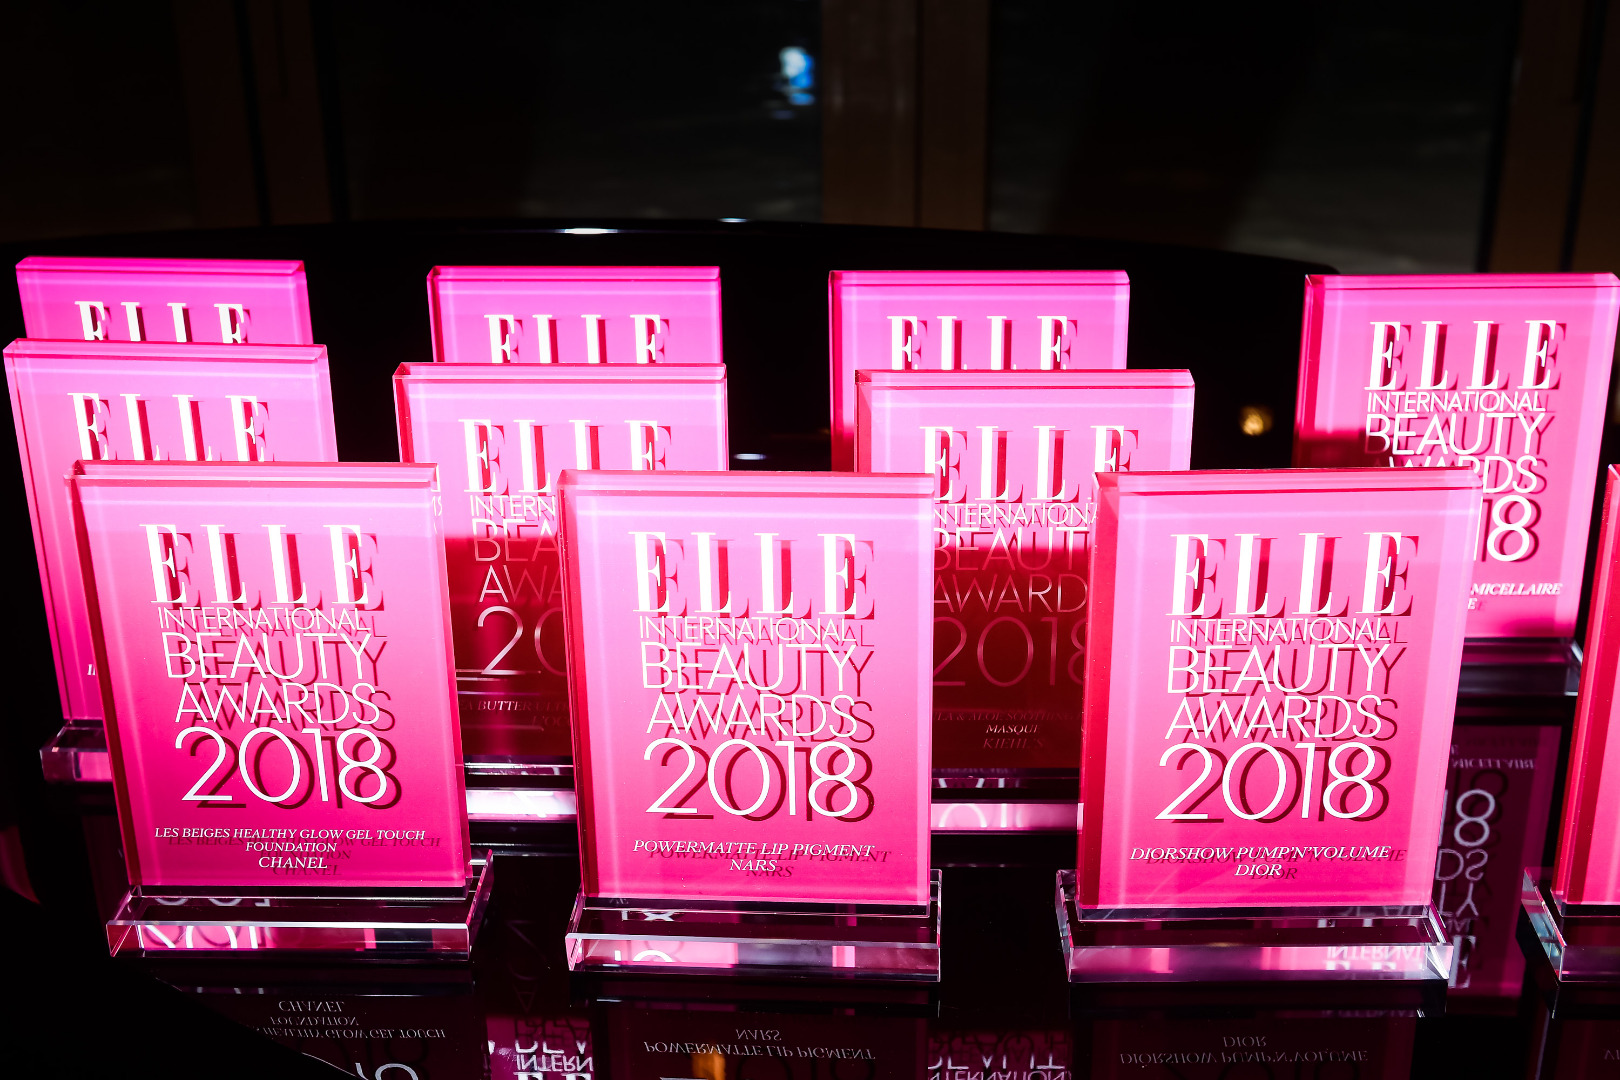 Elle Beauty International Awards: awards given